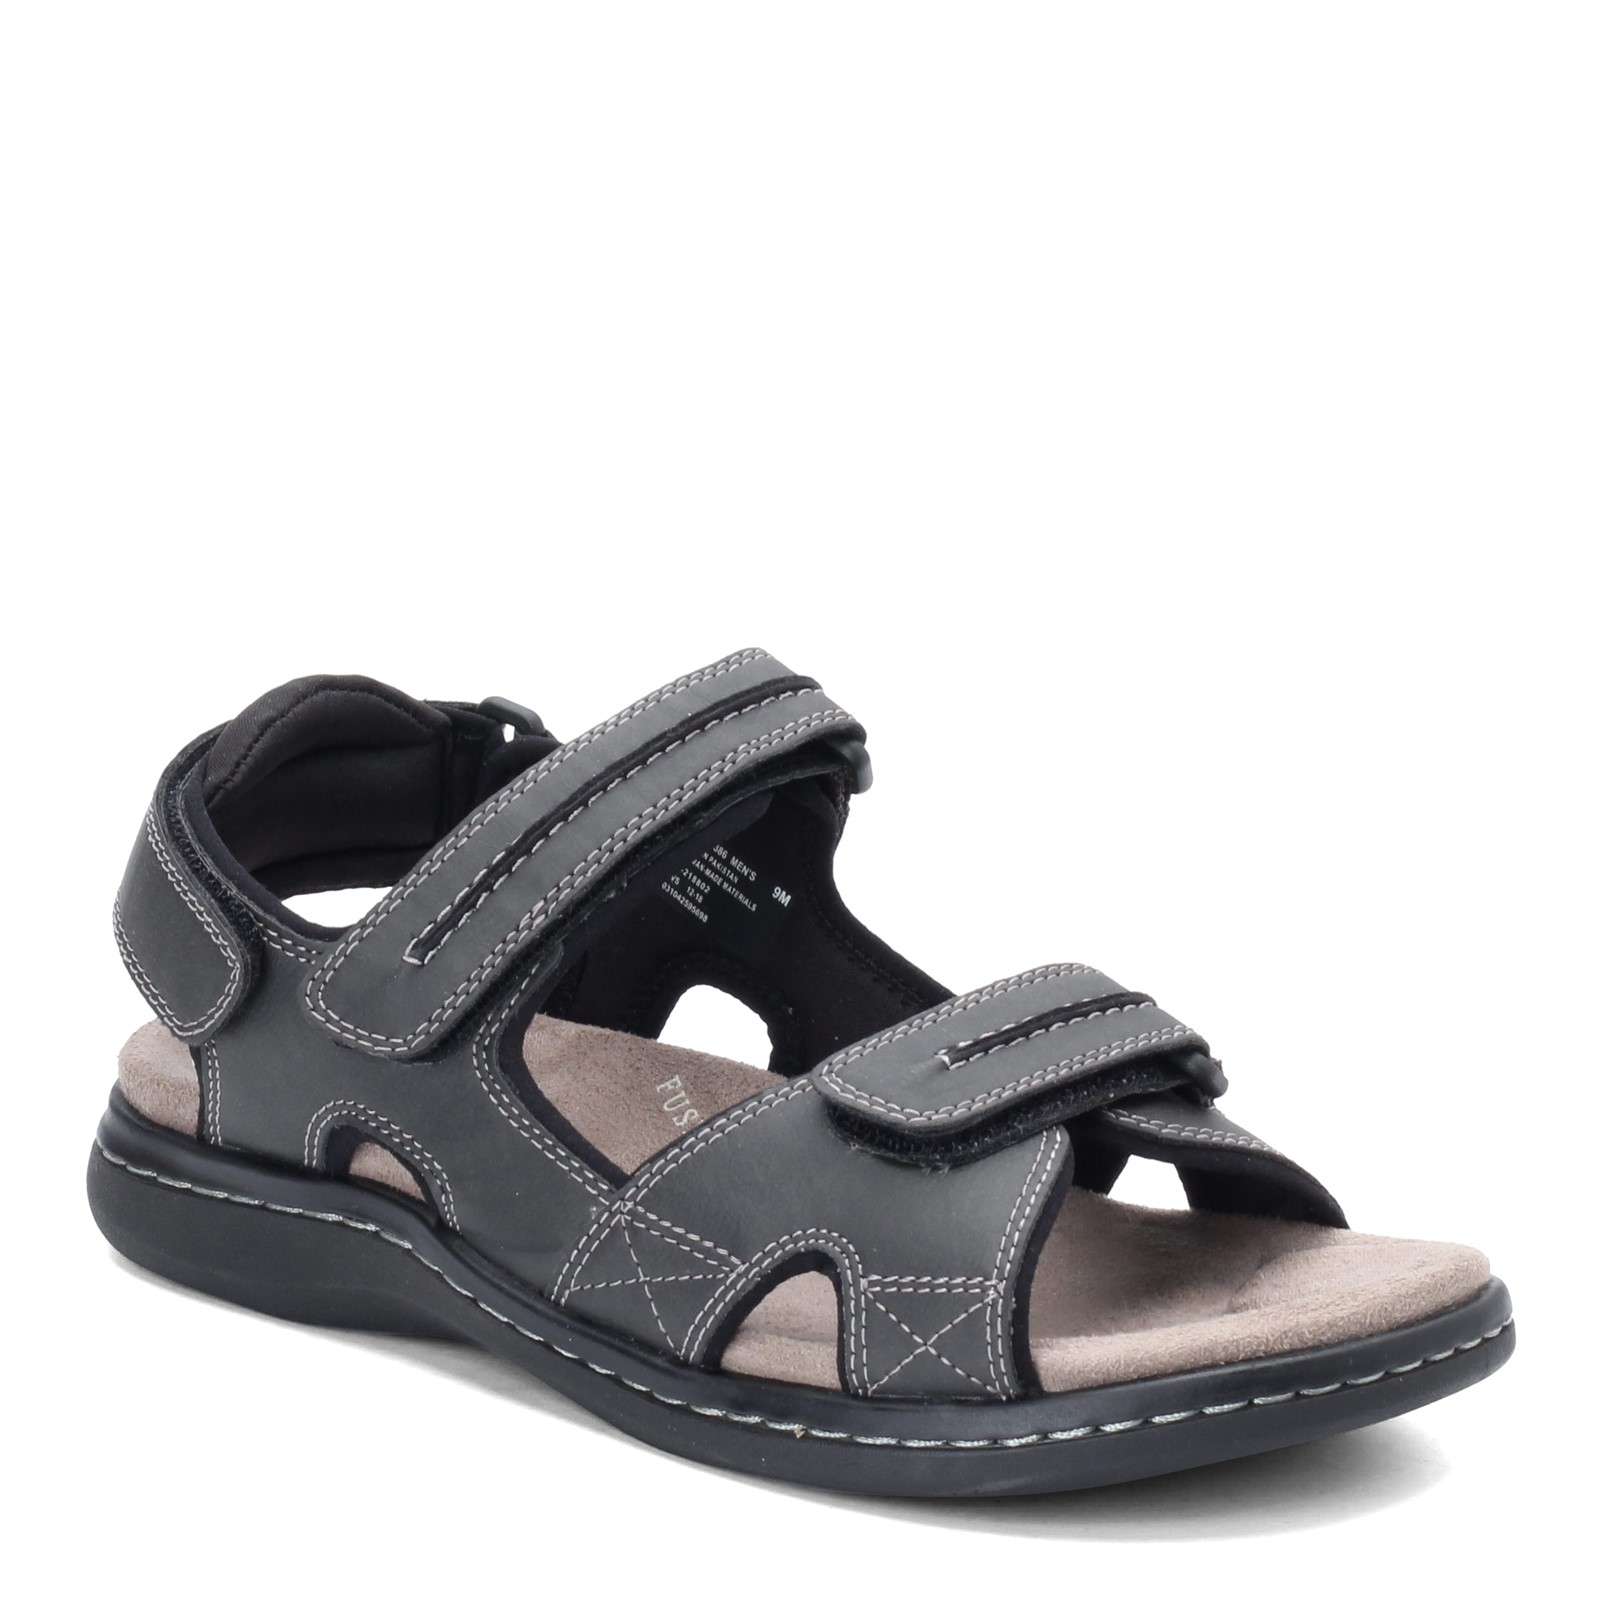 Men's Dockers, Newpage Sandal